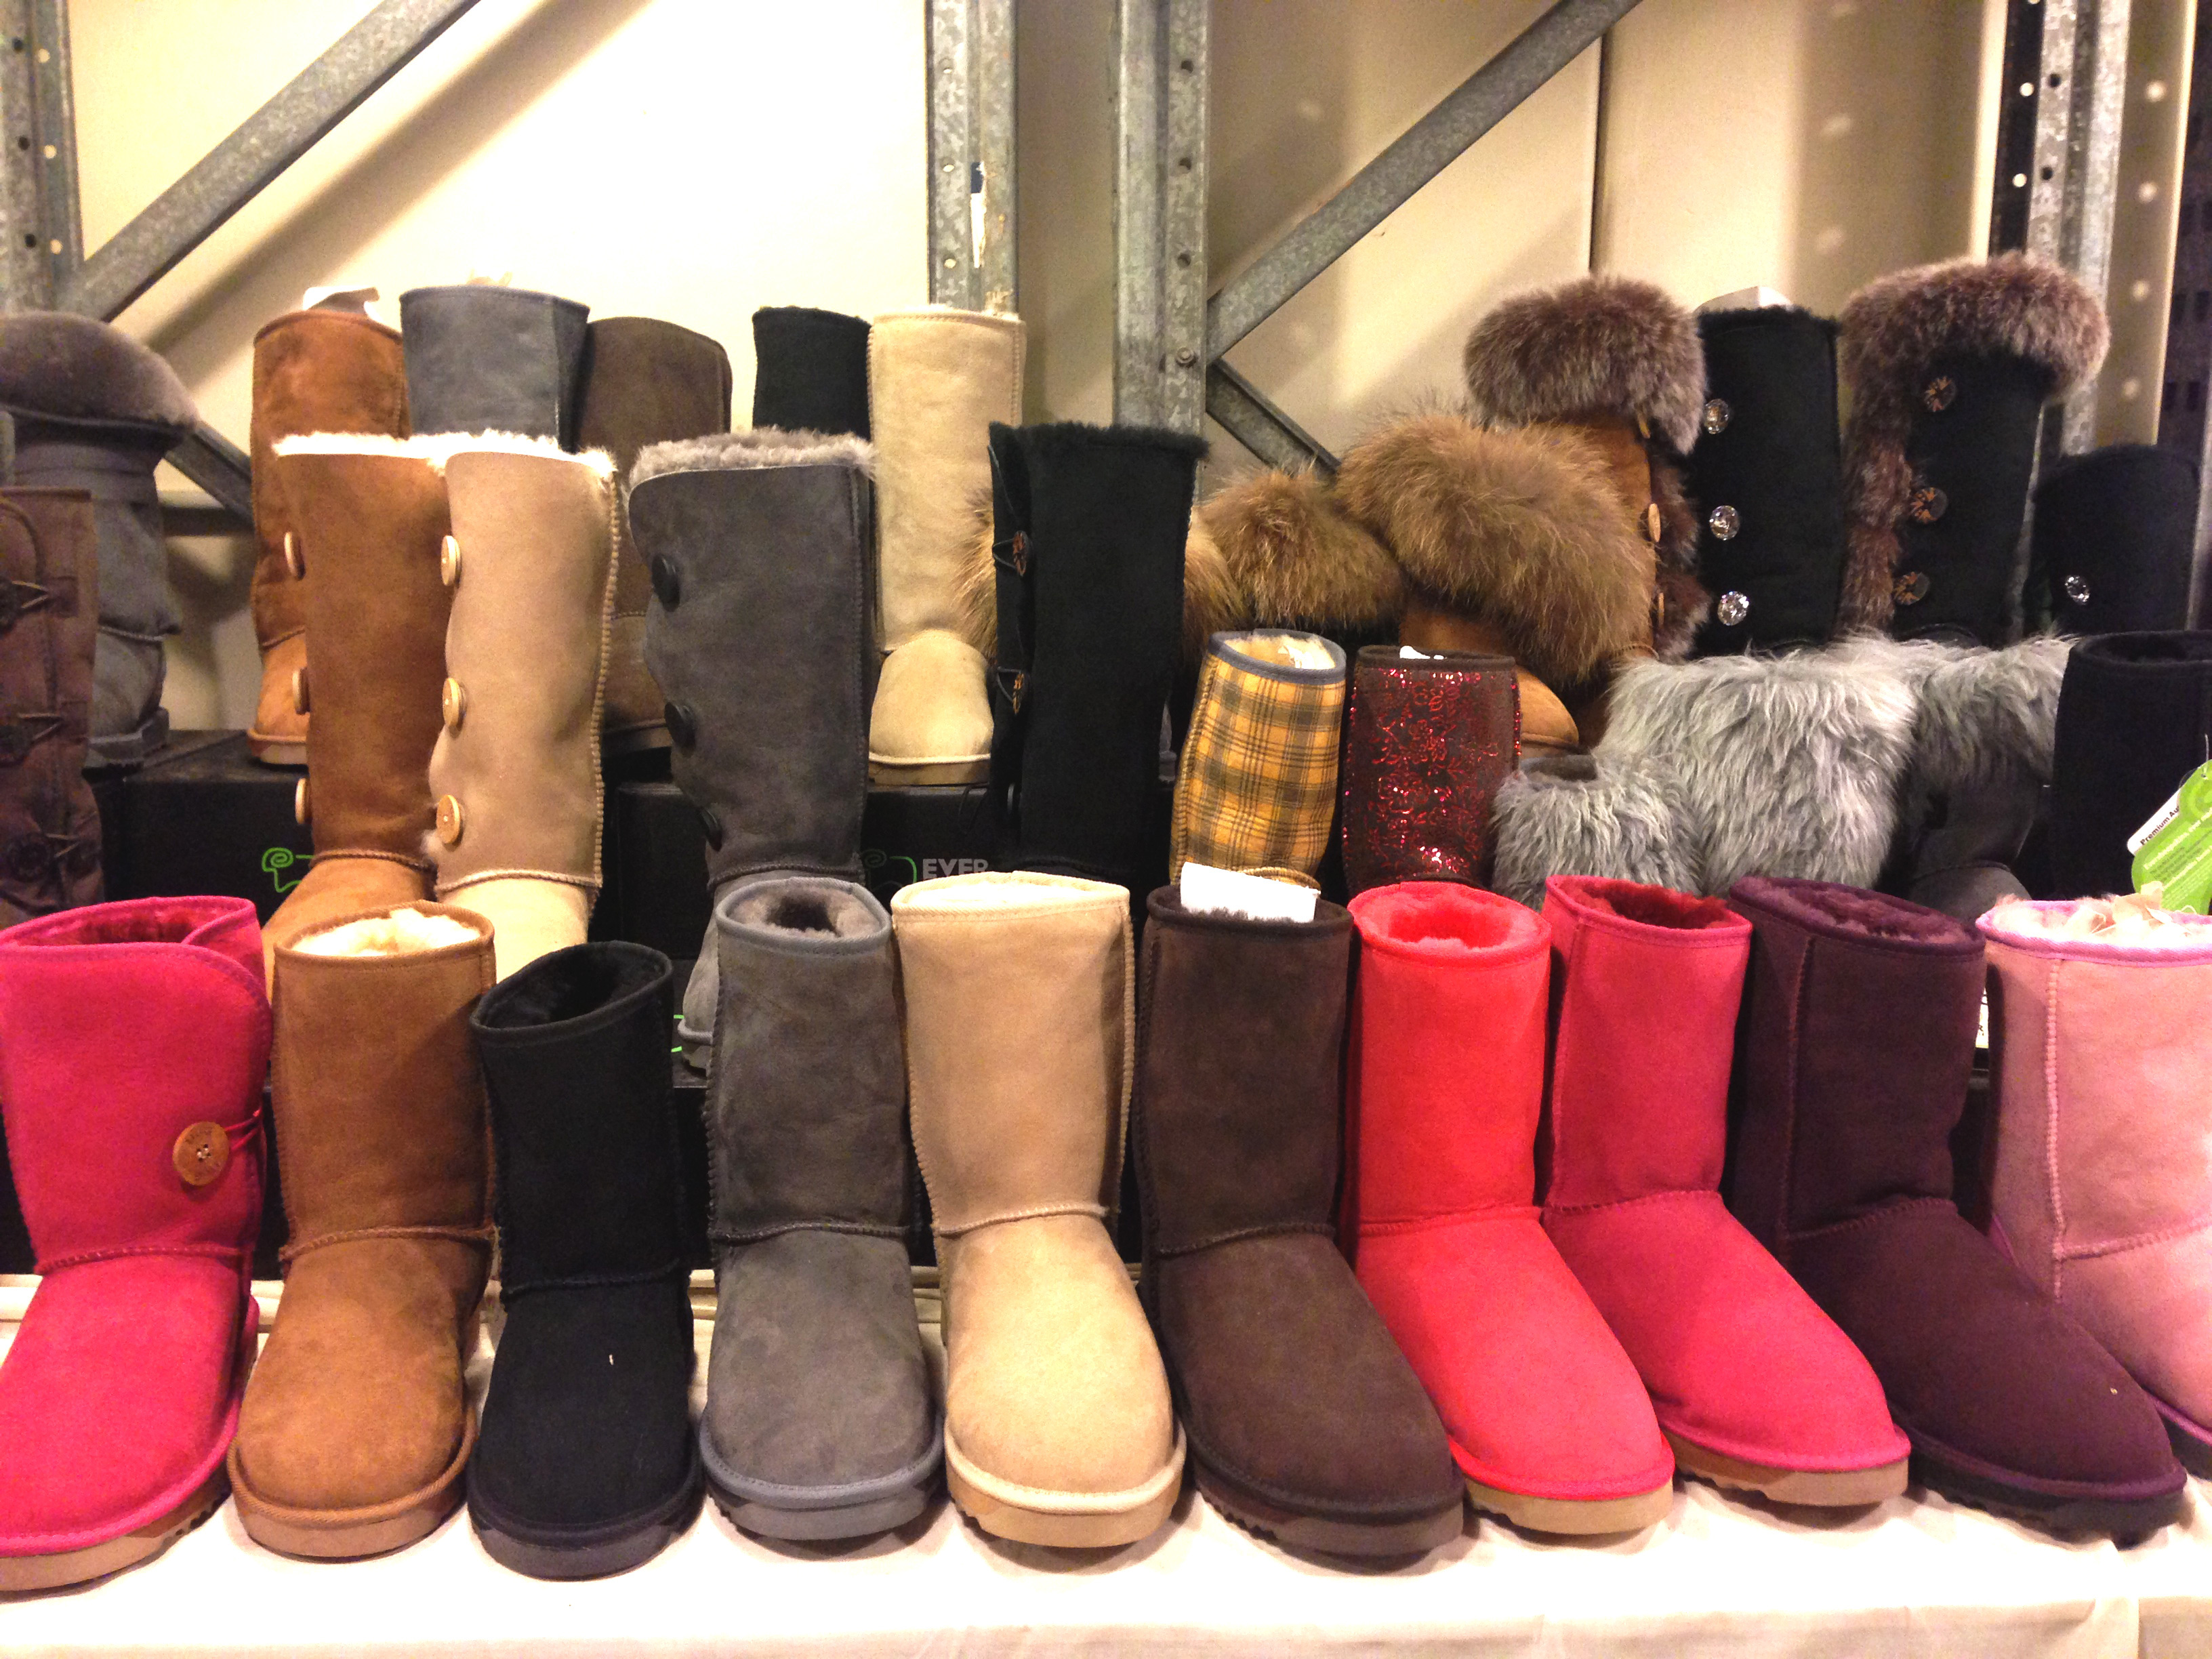 Sydney Shopping Outlets Ugg Boots Factory Outlet Sydney